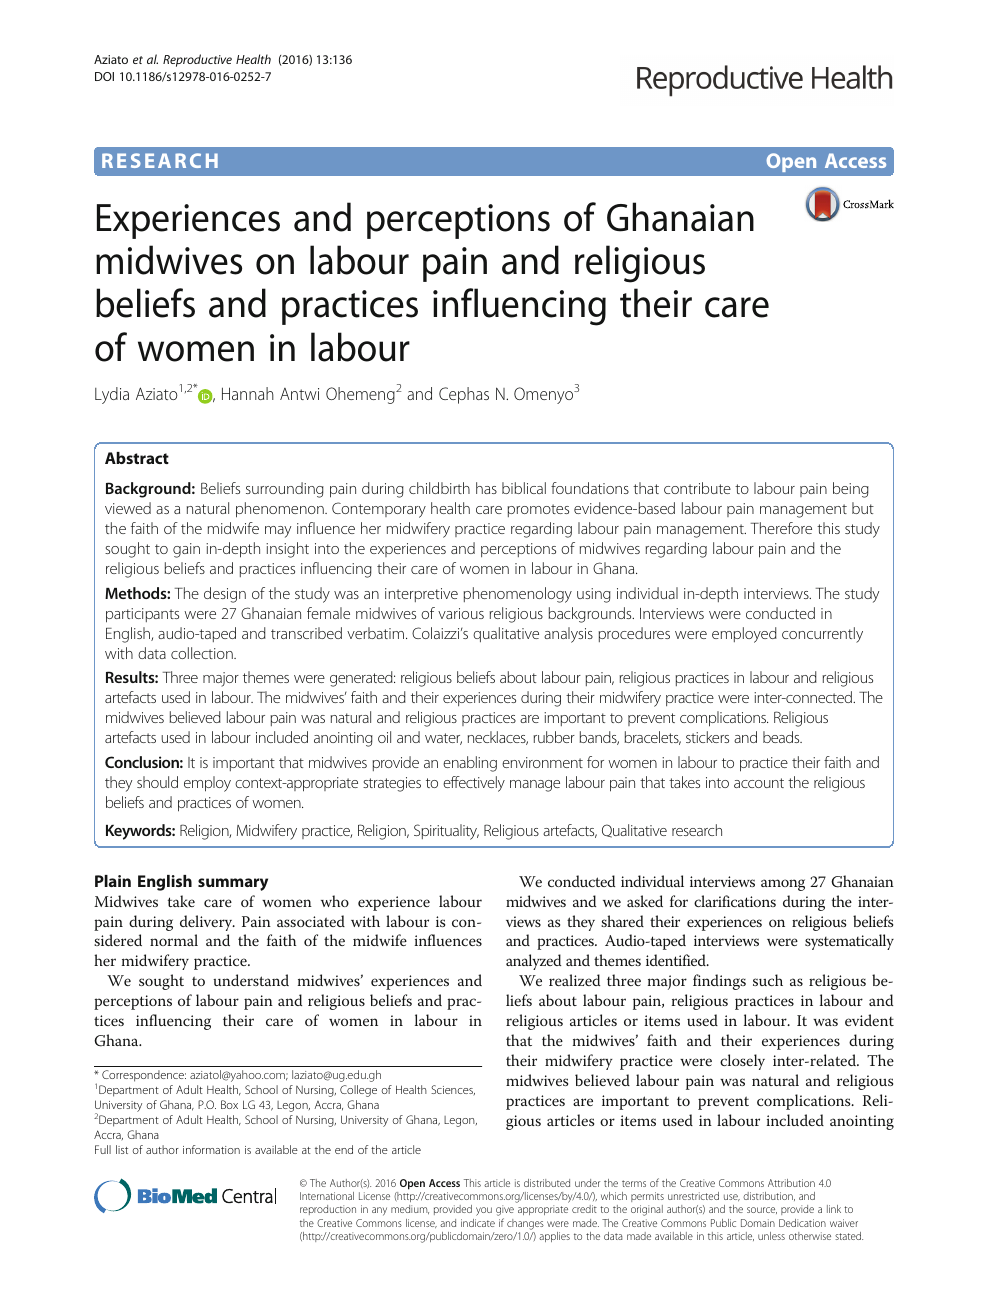 Experiences and perceptions of Ghanaian midwives on labour pain and